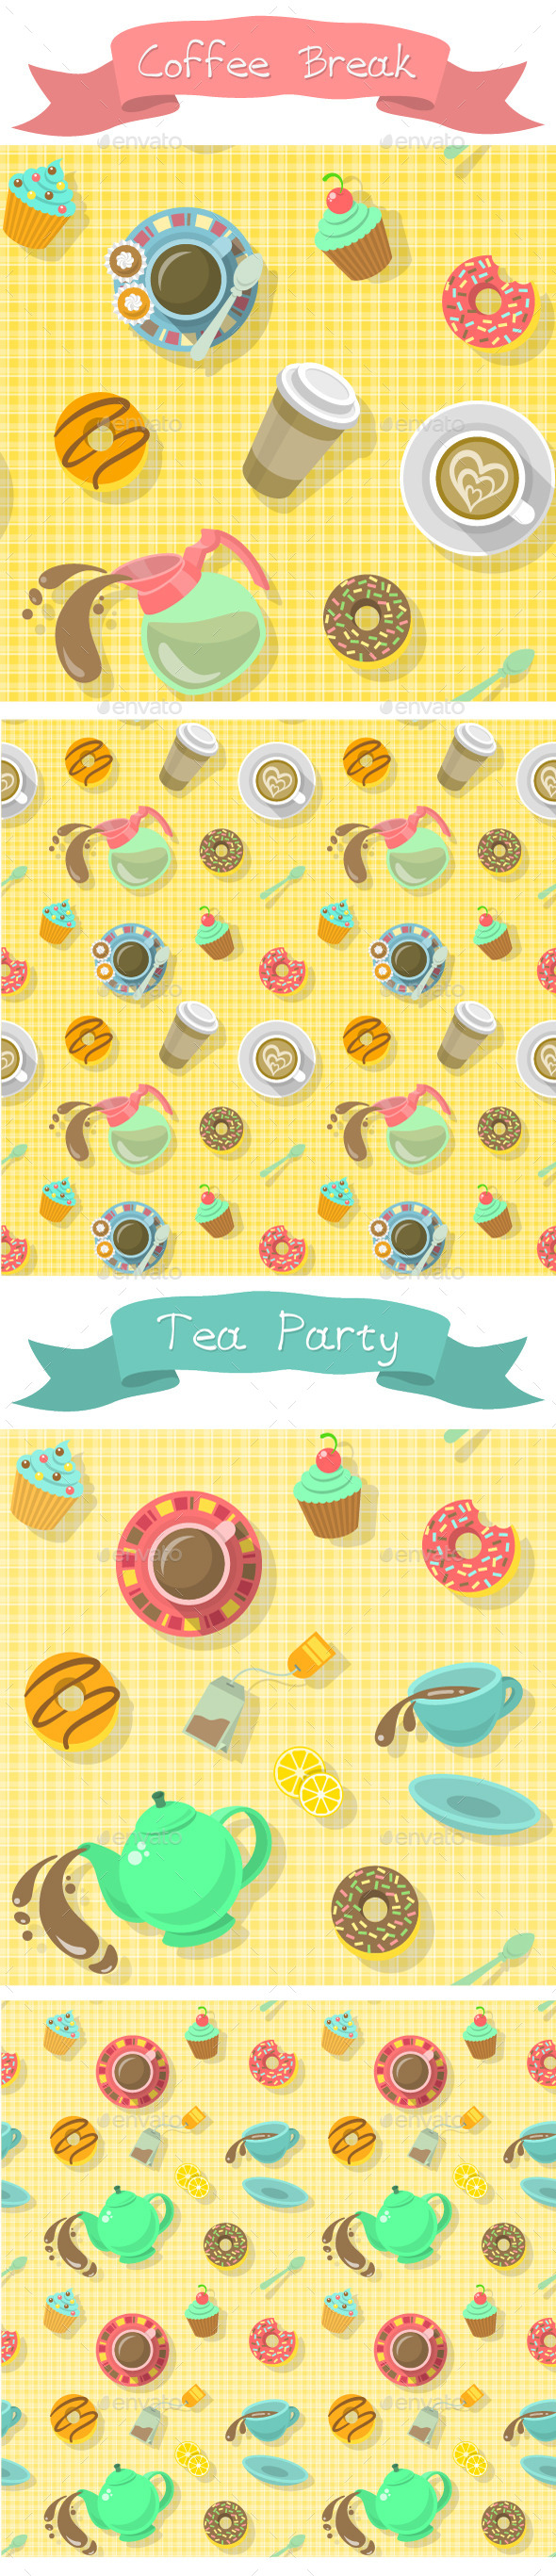 Coffee Break and Tea Party Patterns - Patterns Decorative